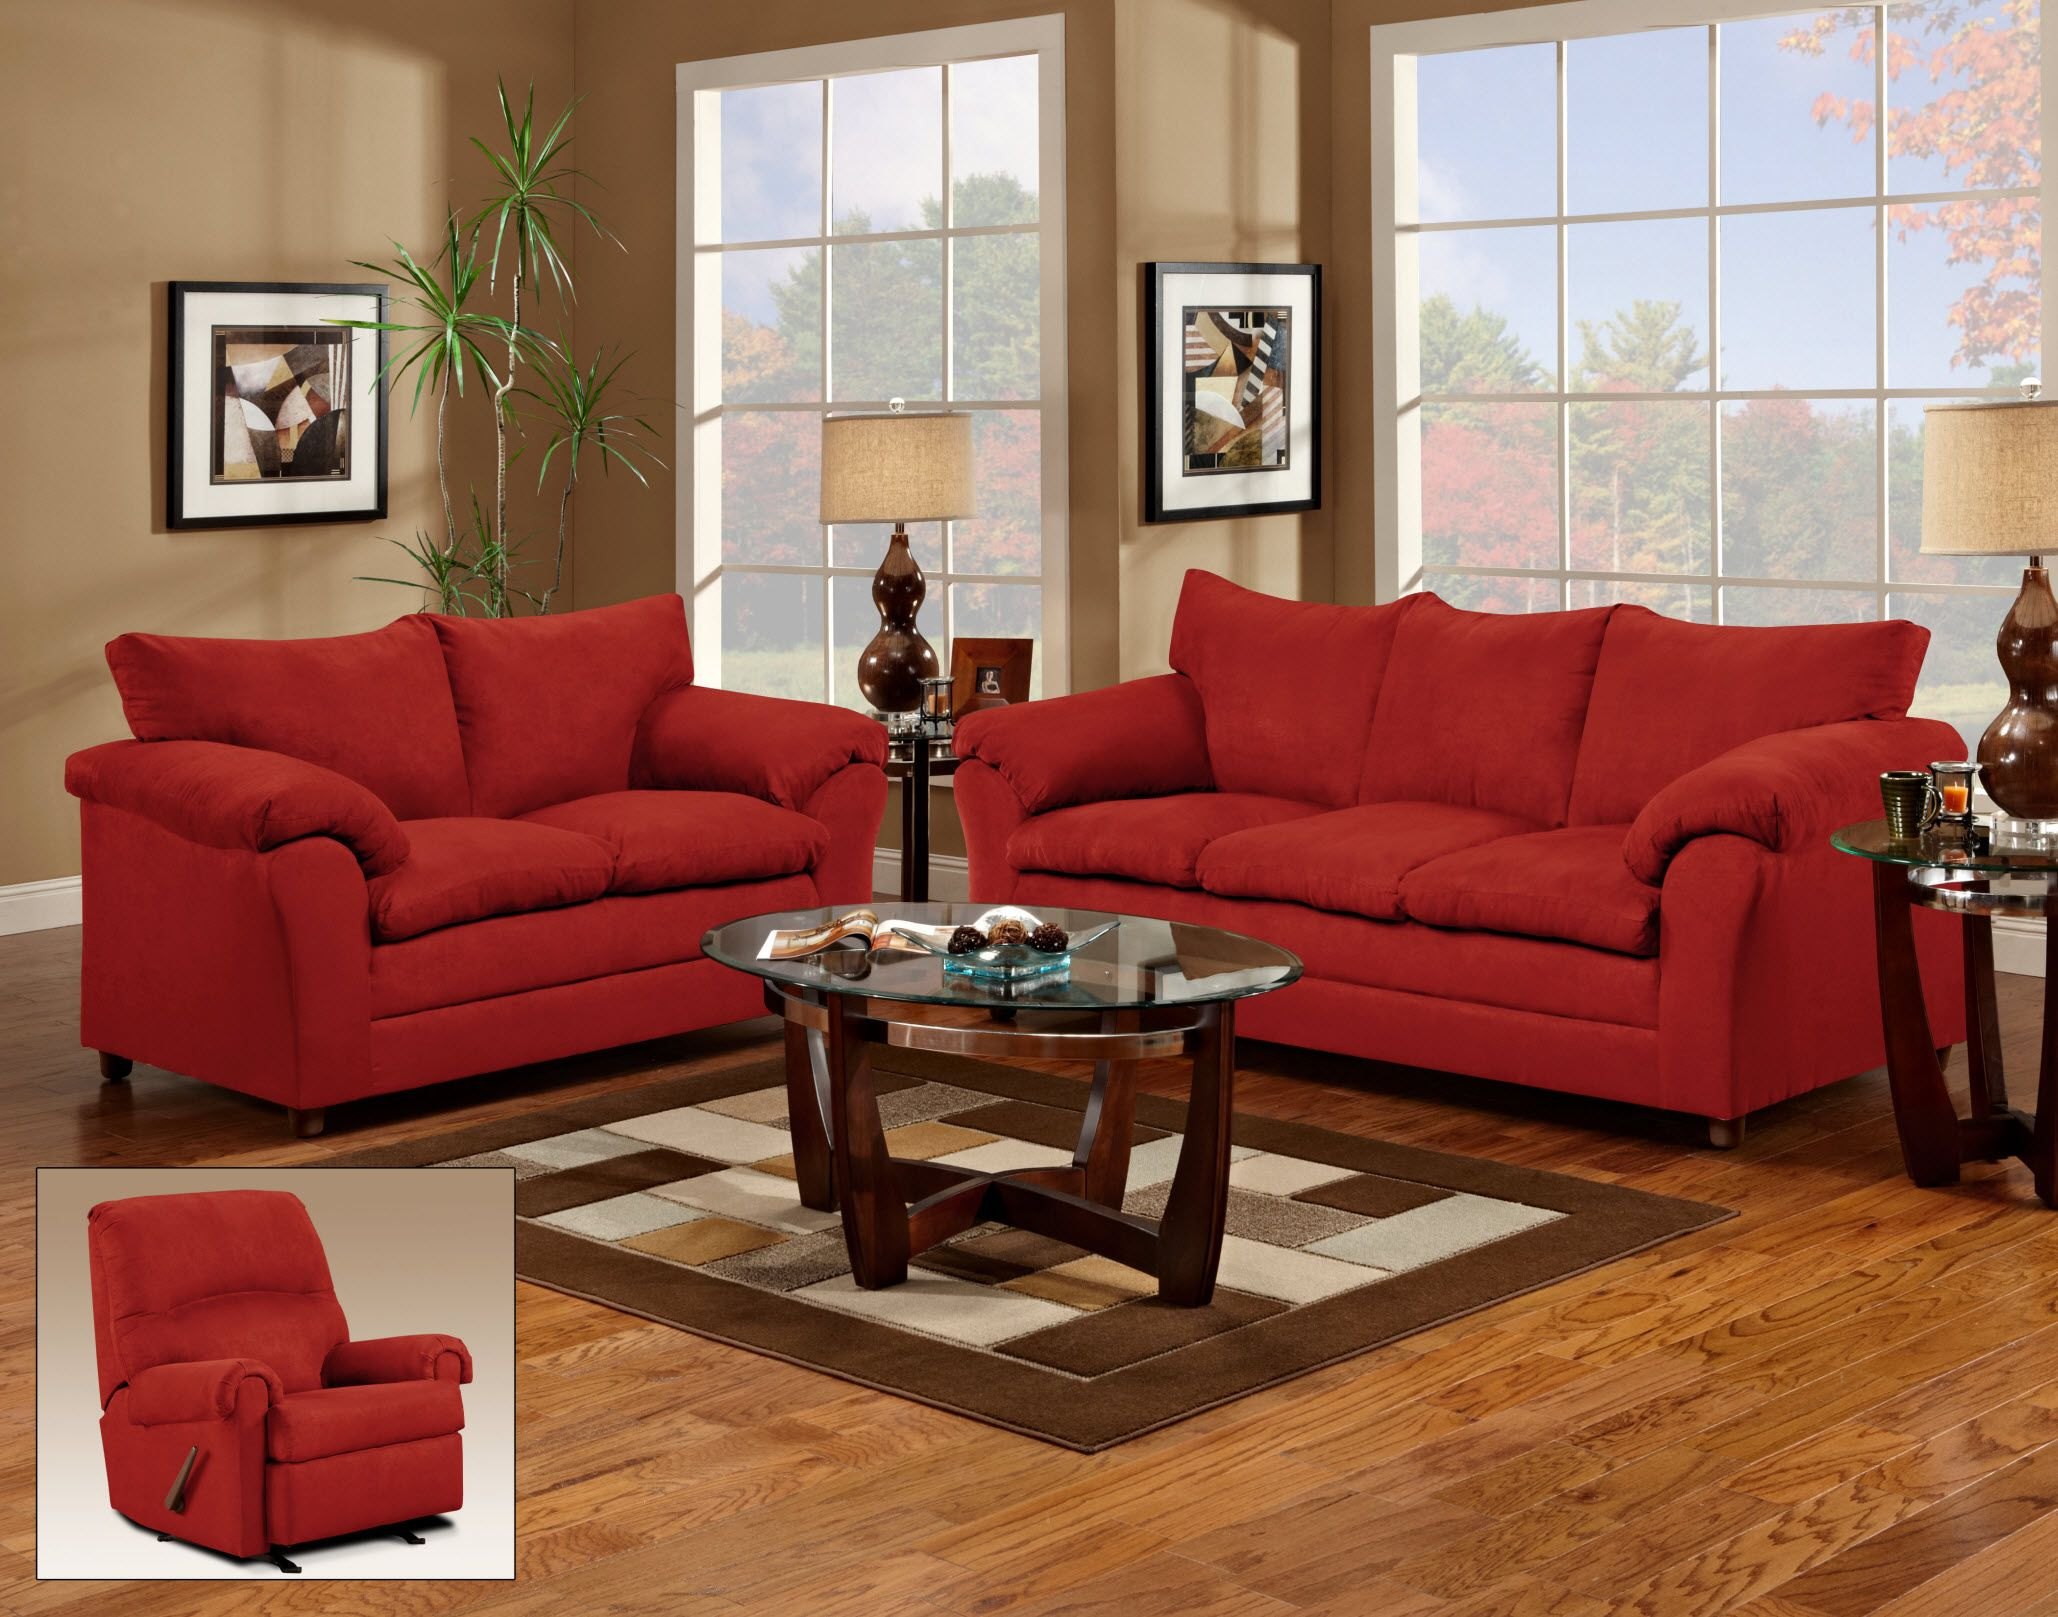 Red Couches In 2020 Red Couch Living Room Couch And Loveseat Living Room Sets